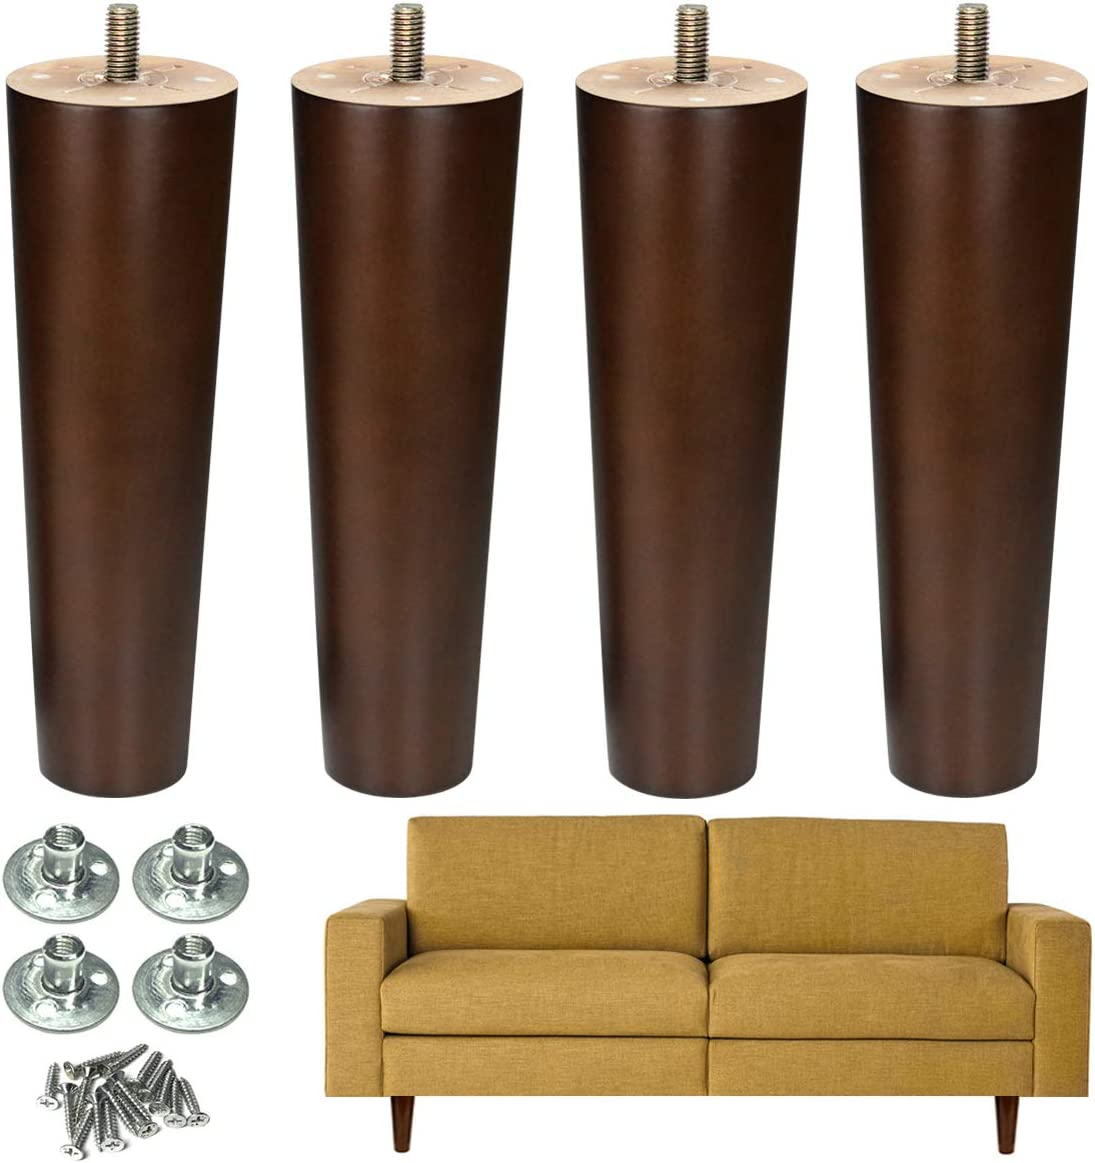 Furniture Leg Sofa Legs Wood 8 inch Midcentury Walnut Color Chair Legs Replacement 5/16 inch Bolt Set of 4